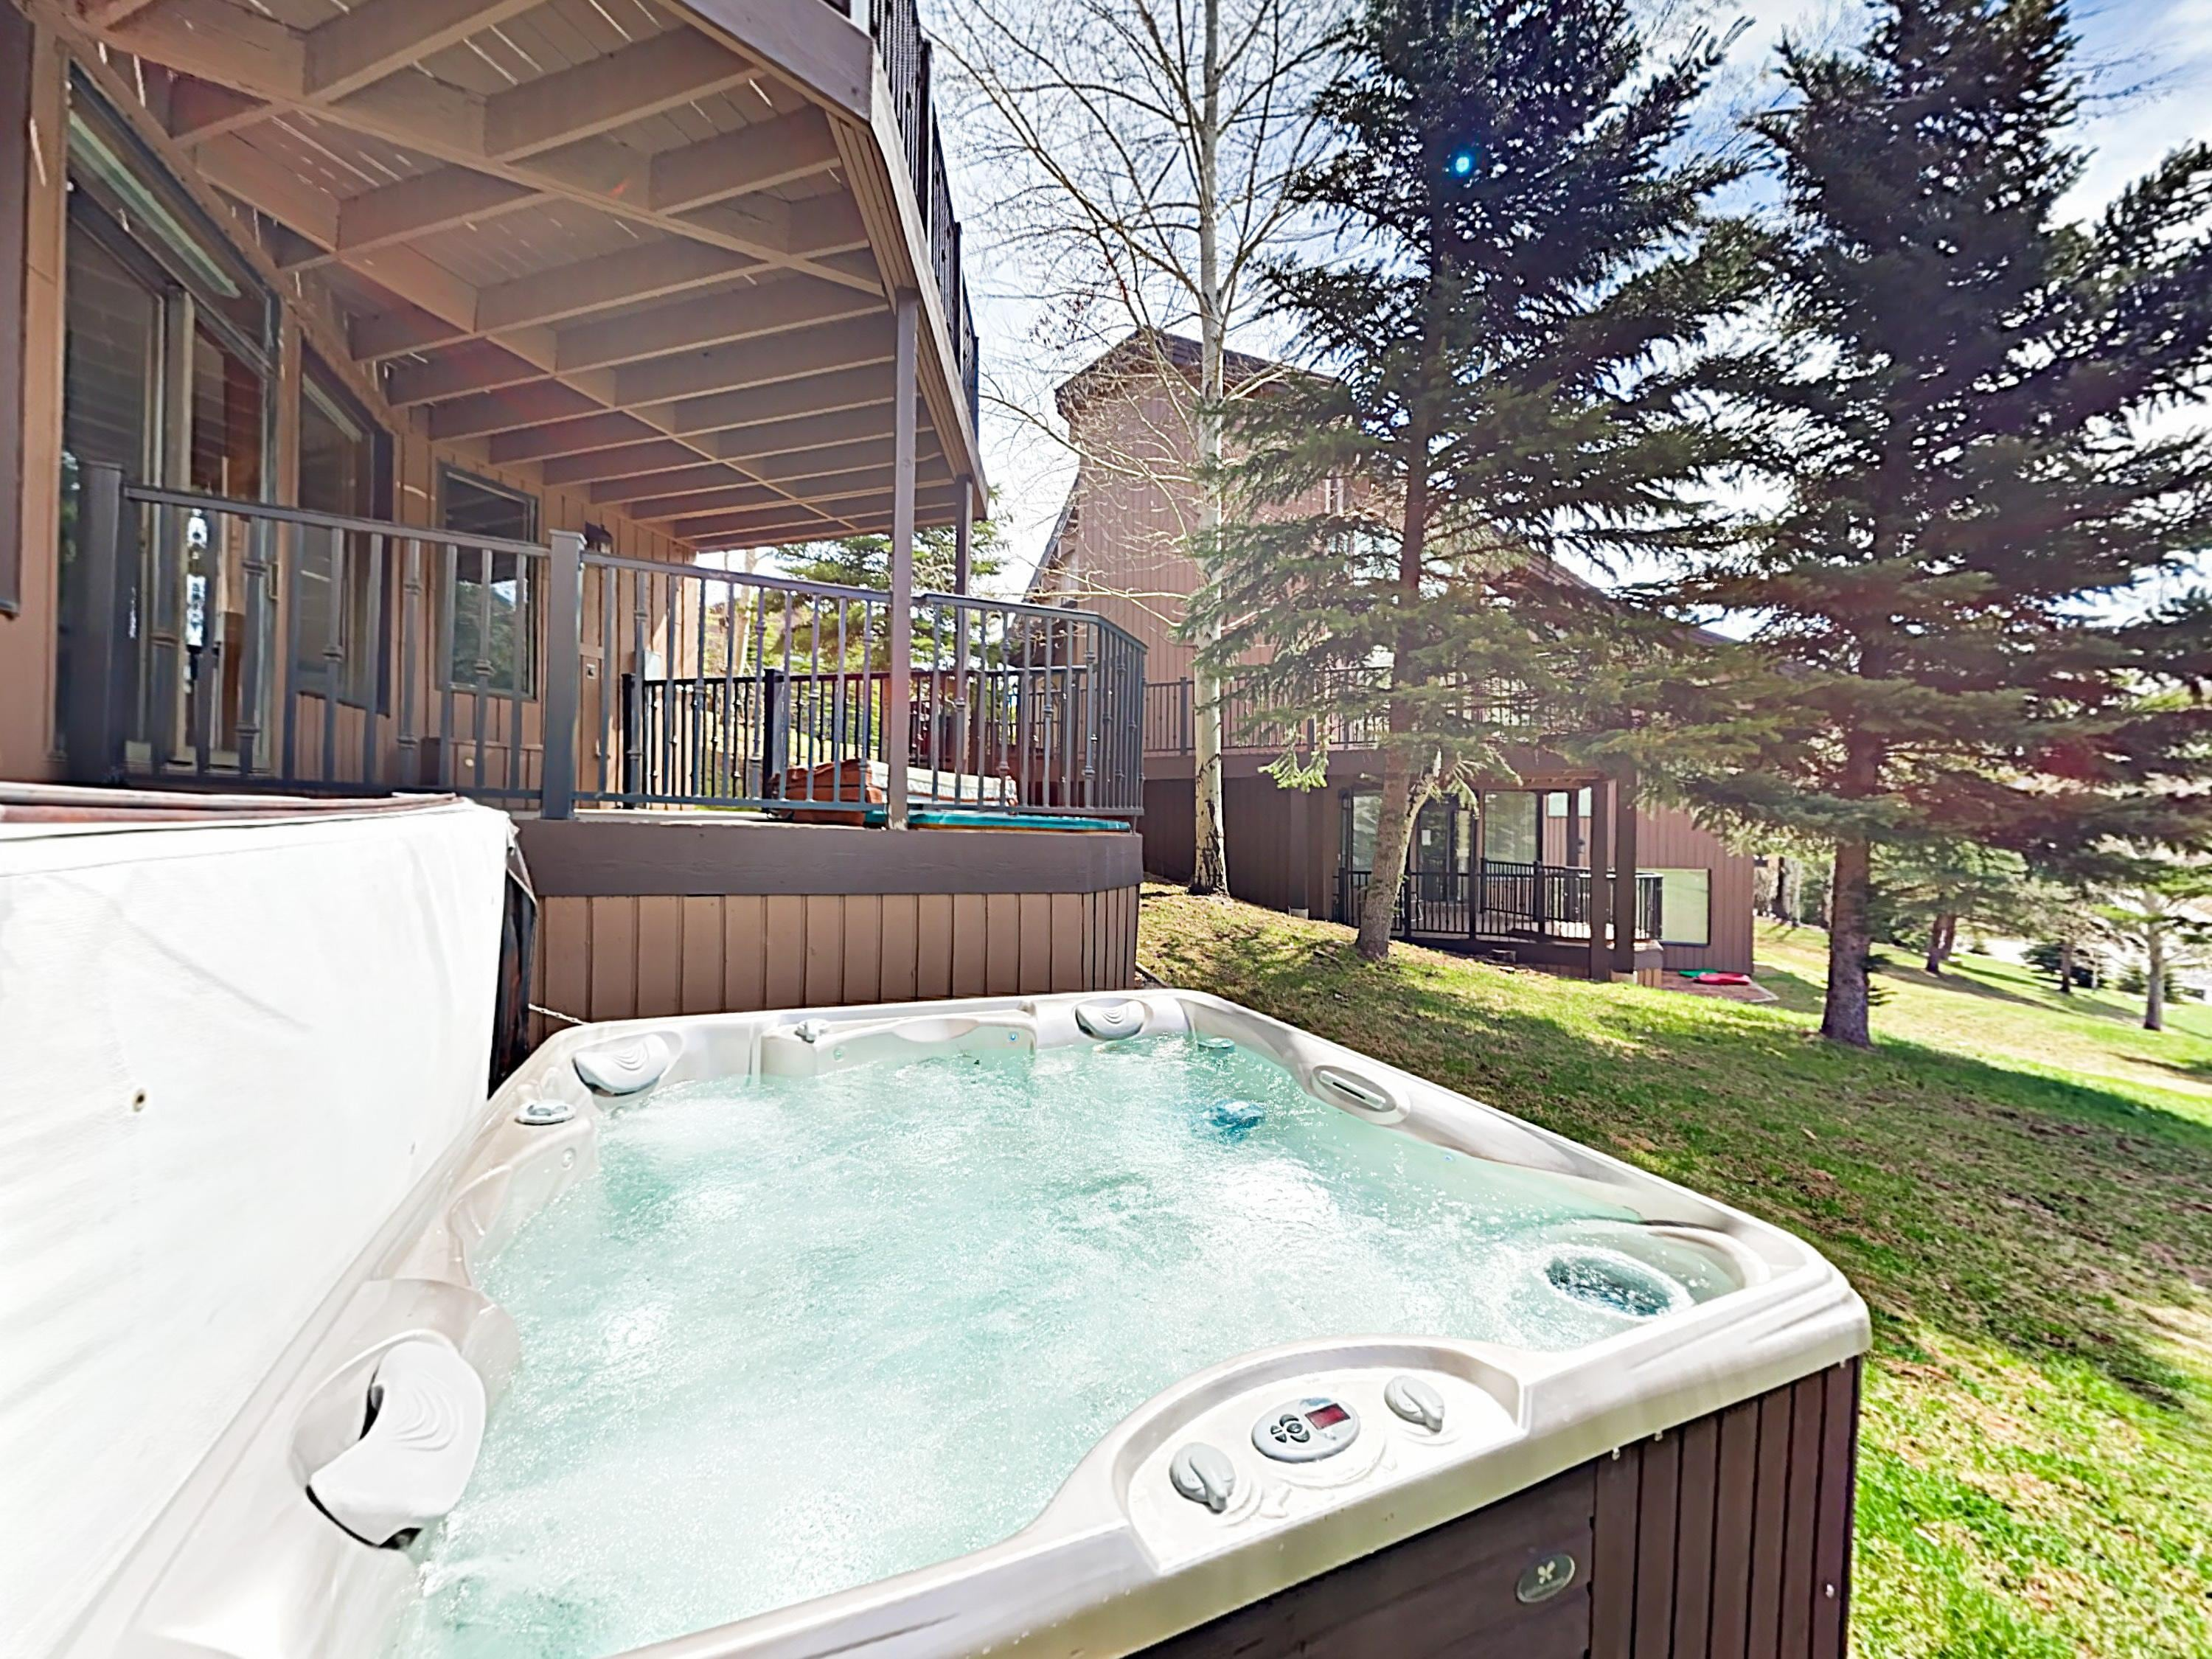 After a day of skiing, fire up the bubbles in your private hot tub!